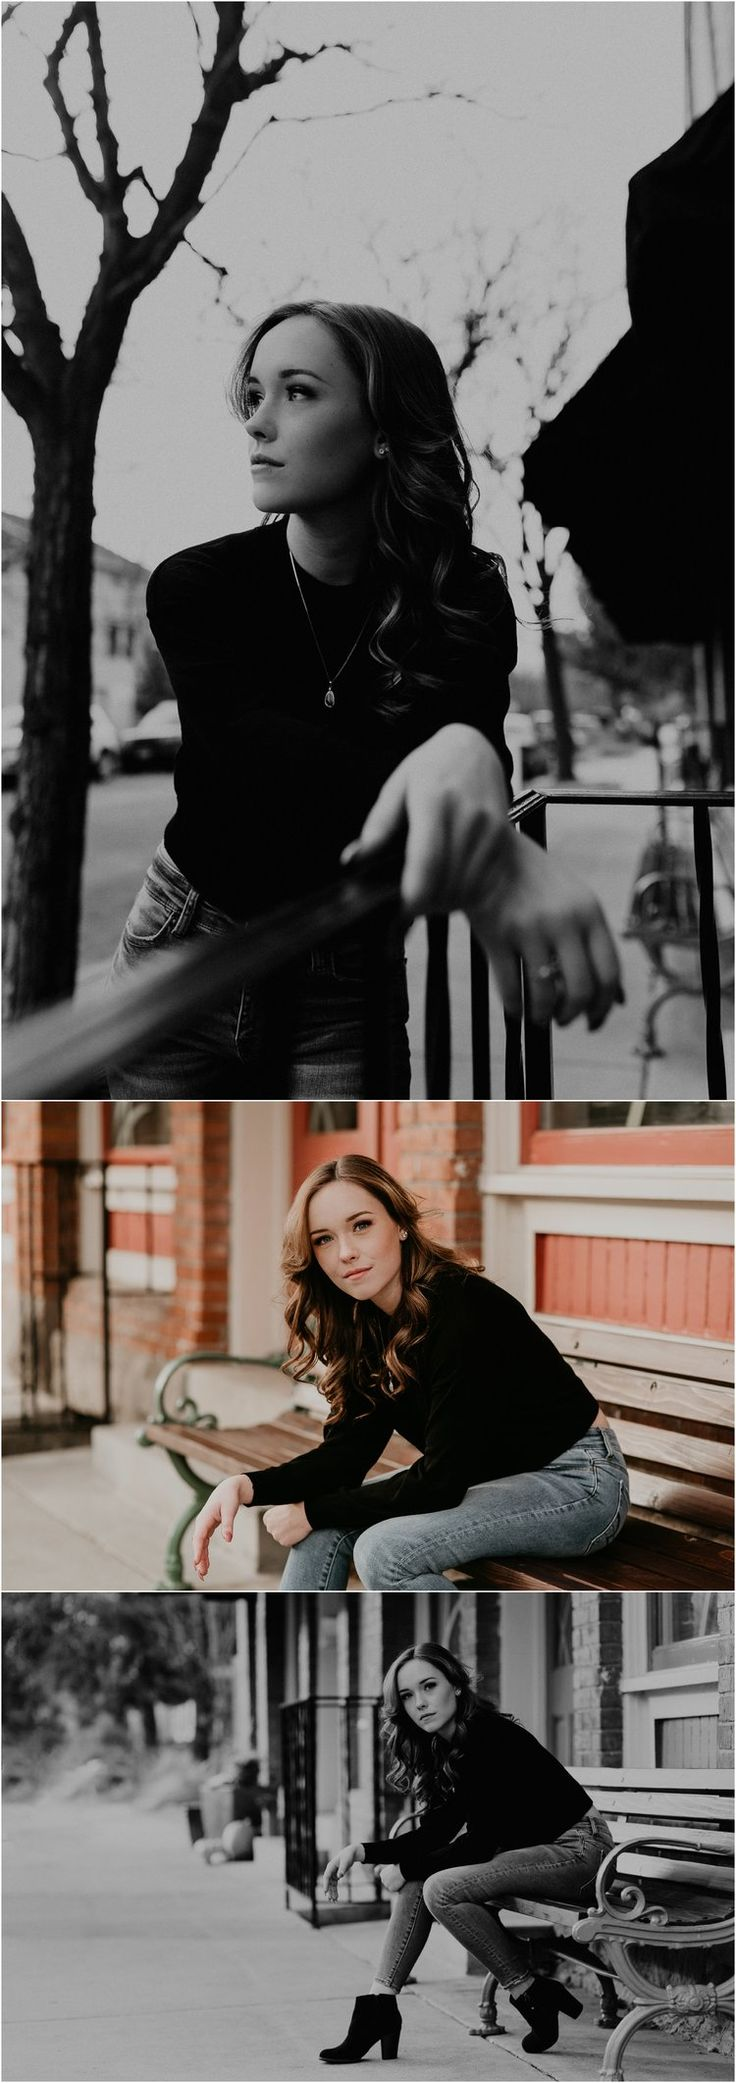 Boise Senior Photographer Makayla Madden Photography Downtown Boise Hyde Park Senior Session Senior Photography Urban Senior Picture Ideas Fun Senior Pics Senior Girl Outfit Ideas Inspiration Sassy Portrait Poses Serious Senior Pictures